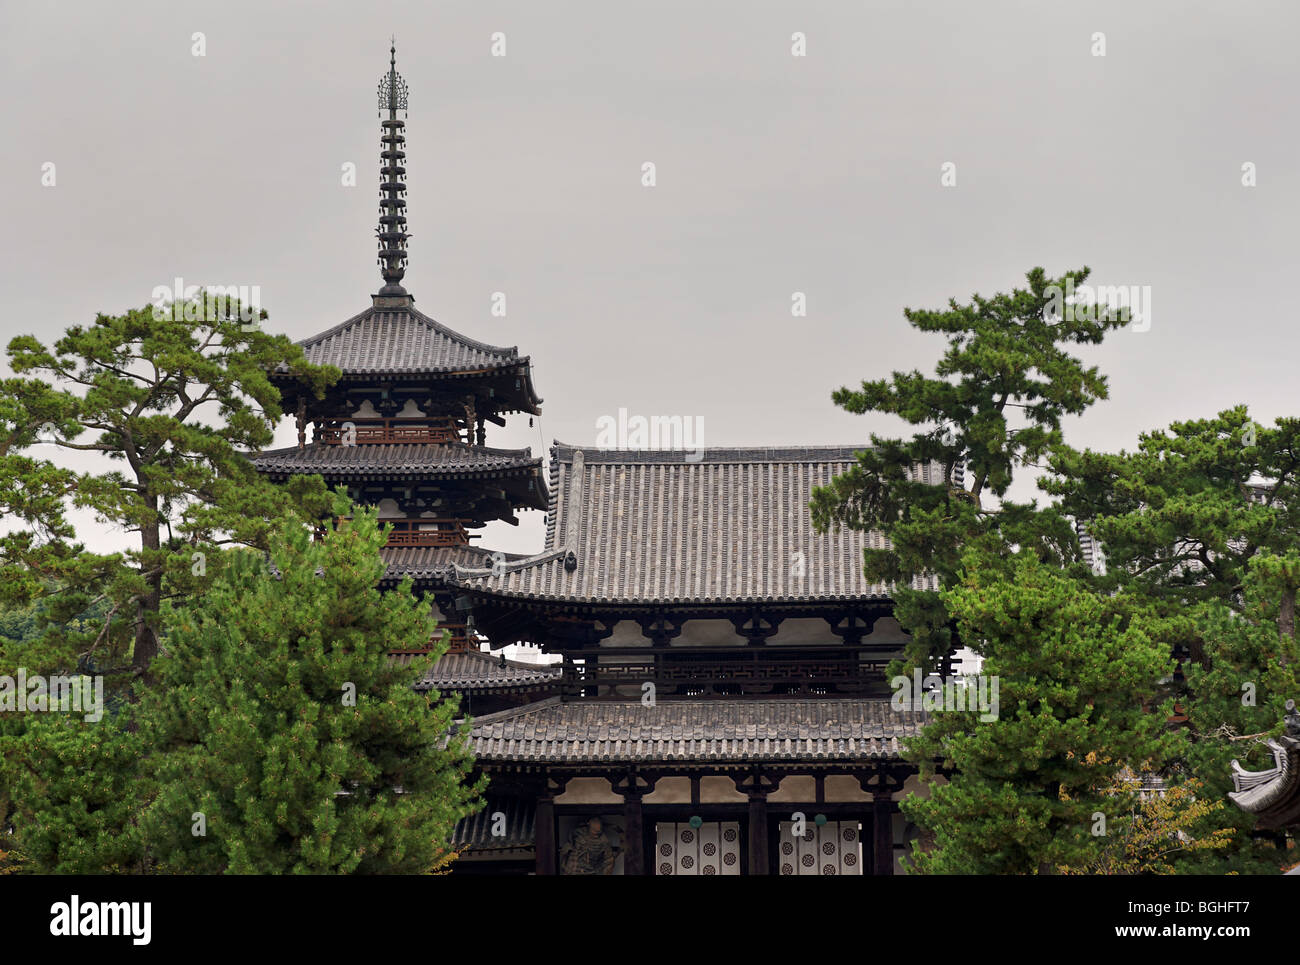 Horyuji temple. One of the oldest temples in Japan Nara prefecture. Japan. - Stock Image